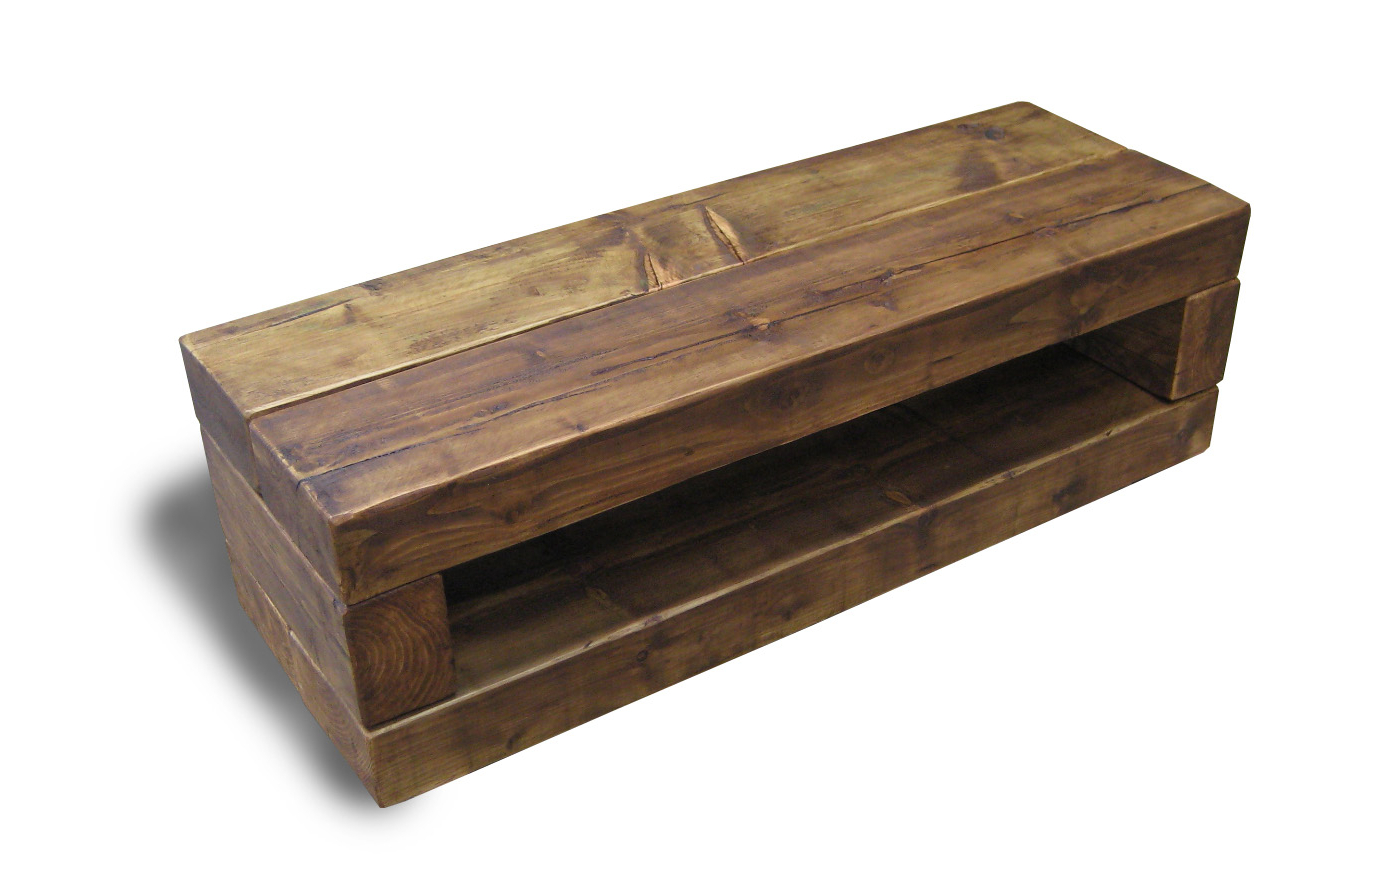 Wood Tv Stands Pertaining To Most Up To Date Chunky Stretch Tv Stand – The Cool Wood Company (View 15 of 20)